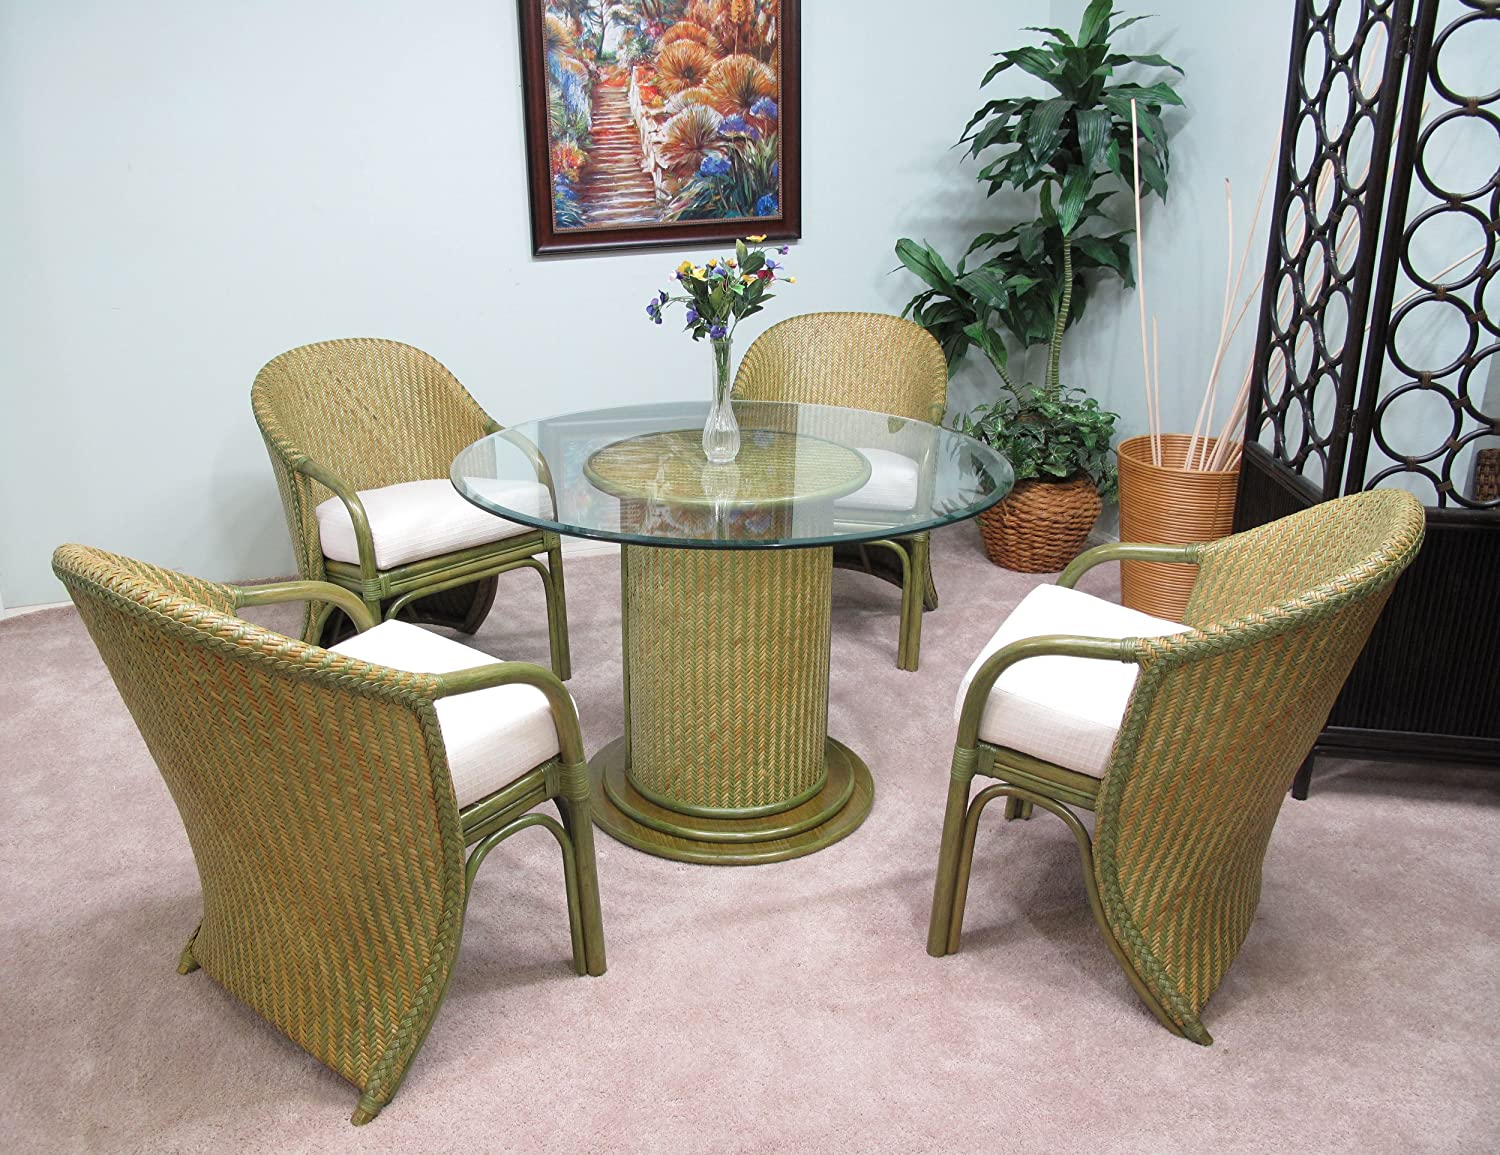 Swell Amazon Com Premium Vintage Rattan Furniture Rio 5Pc Dining Ocoug Best Dining Table And Chair Ideas Images Ocougorg